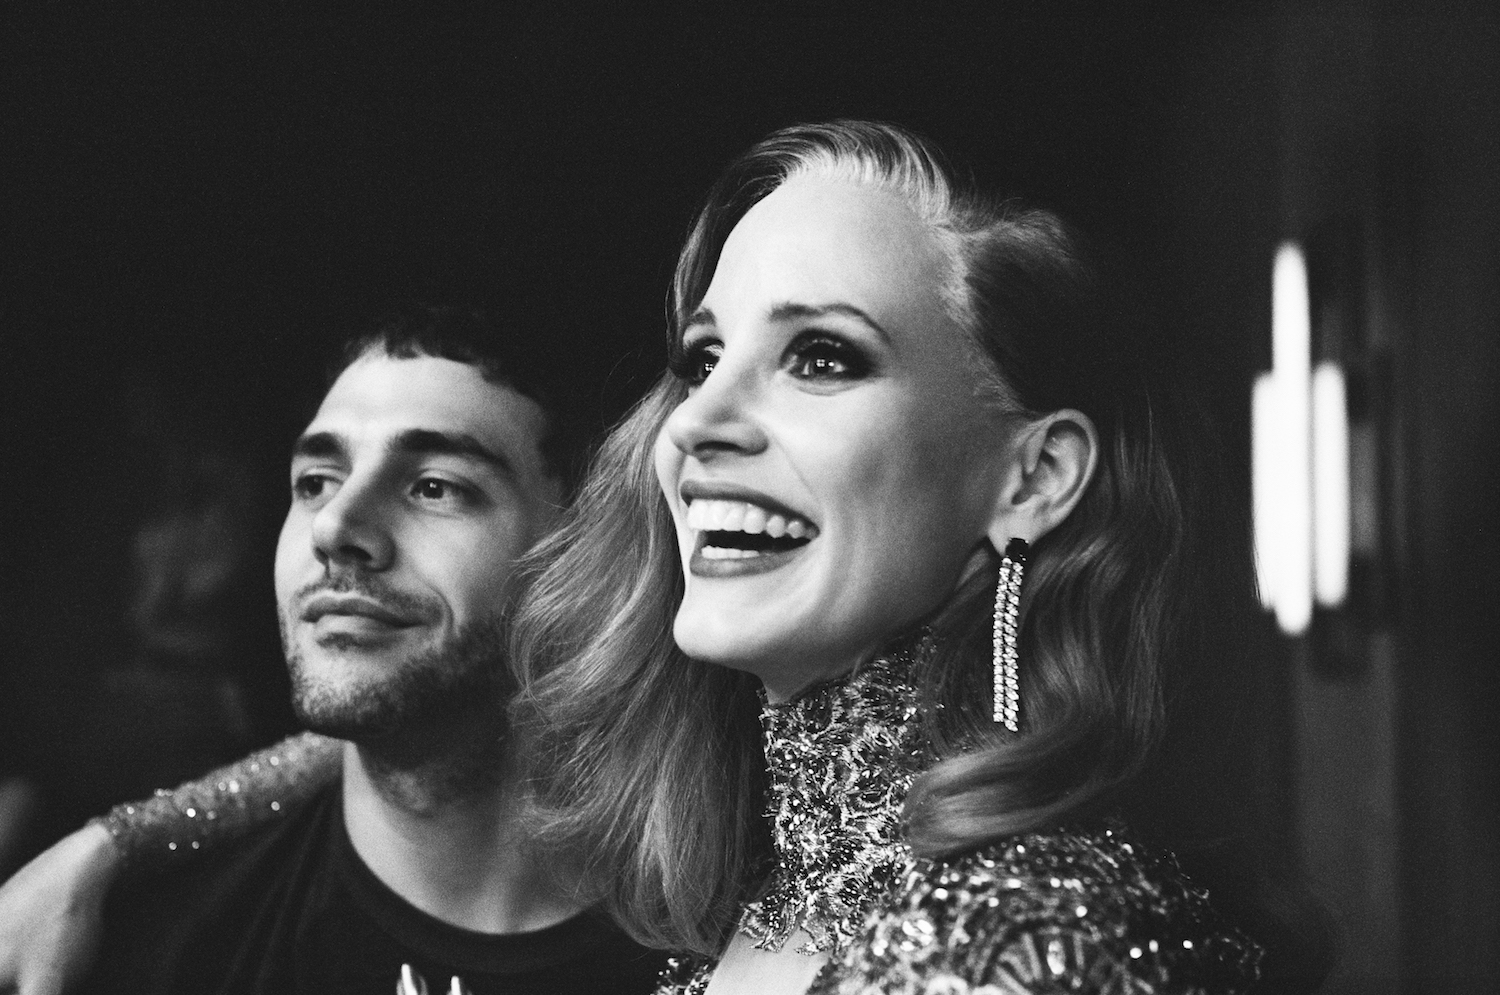 xavier-dolan-jessica-chastain-death-and-life-of-john-f-donovan-set.jpg